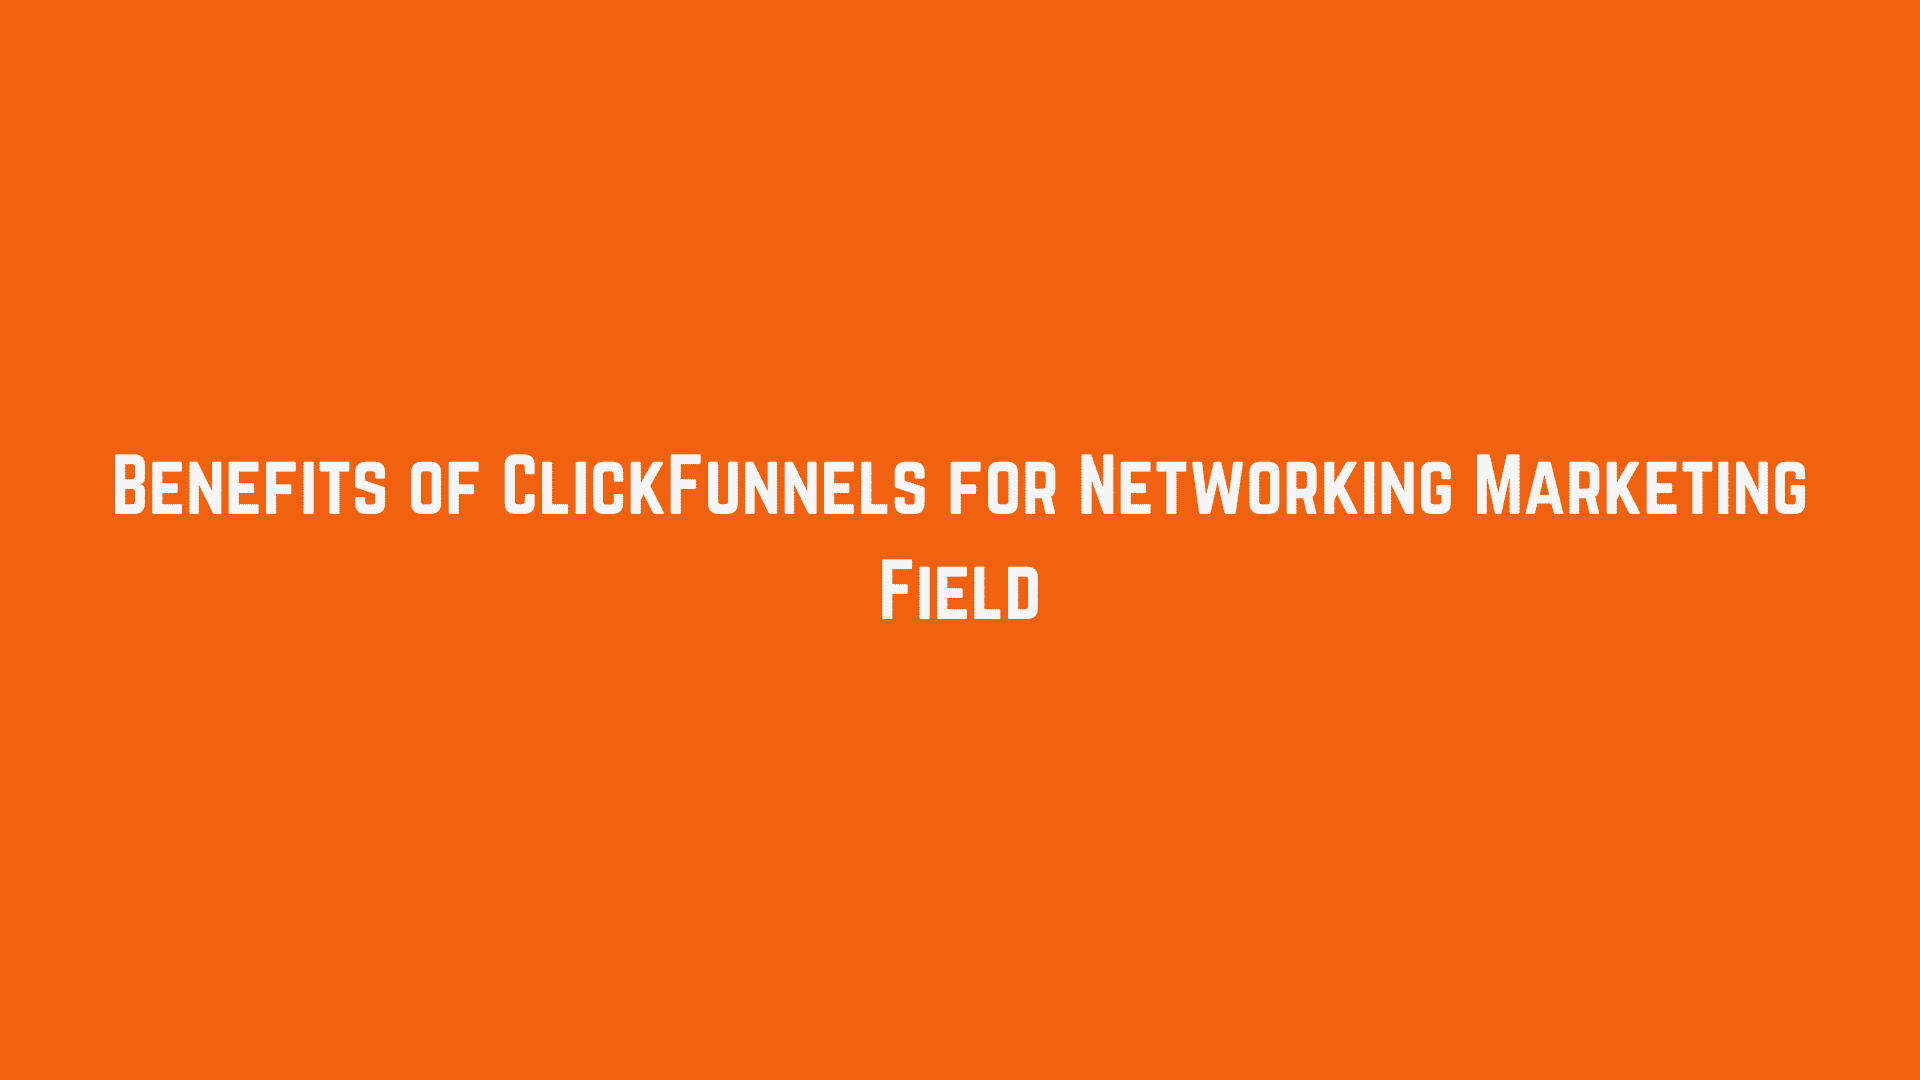 ClickFunnels for Networking Marketing